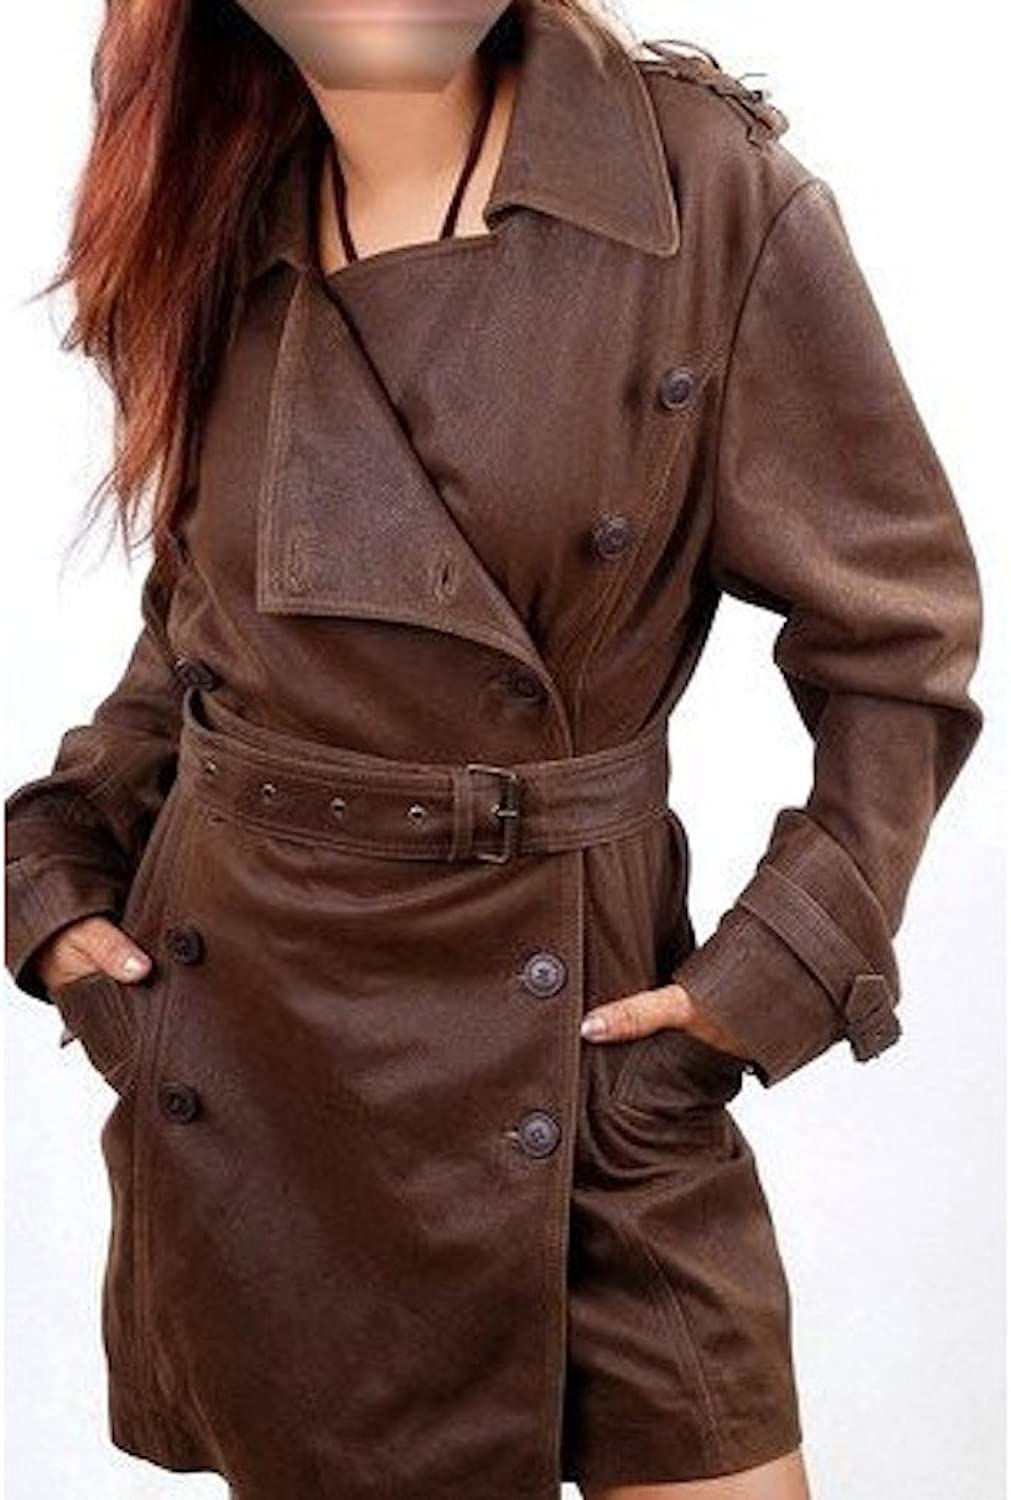 Fadcloset Woman's Marble Brown Vintage Leather Coat